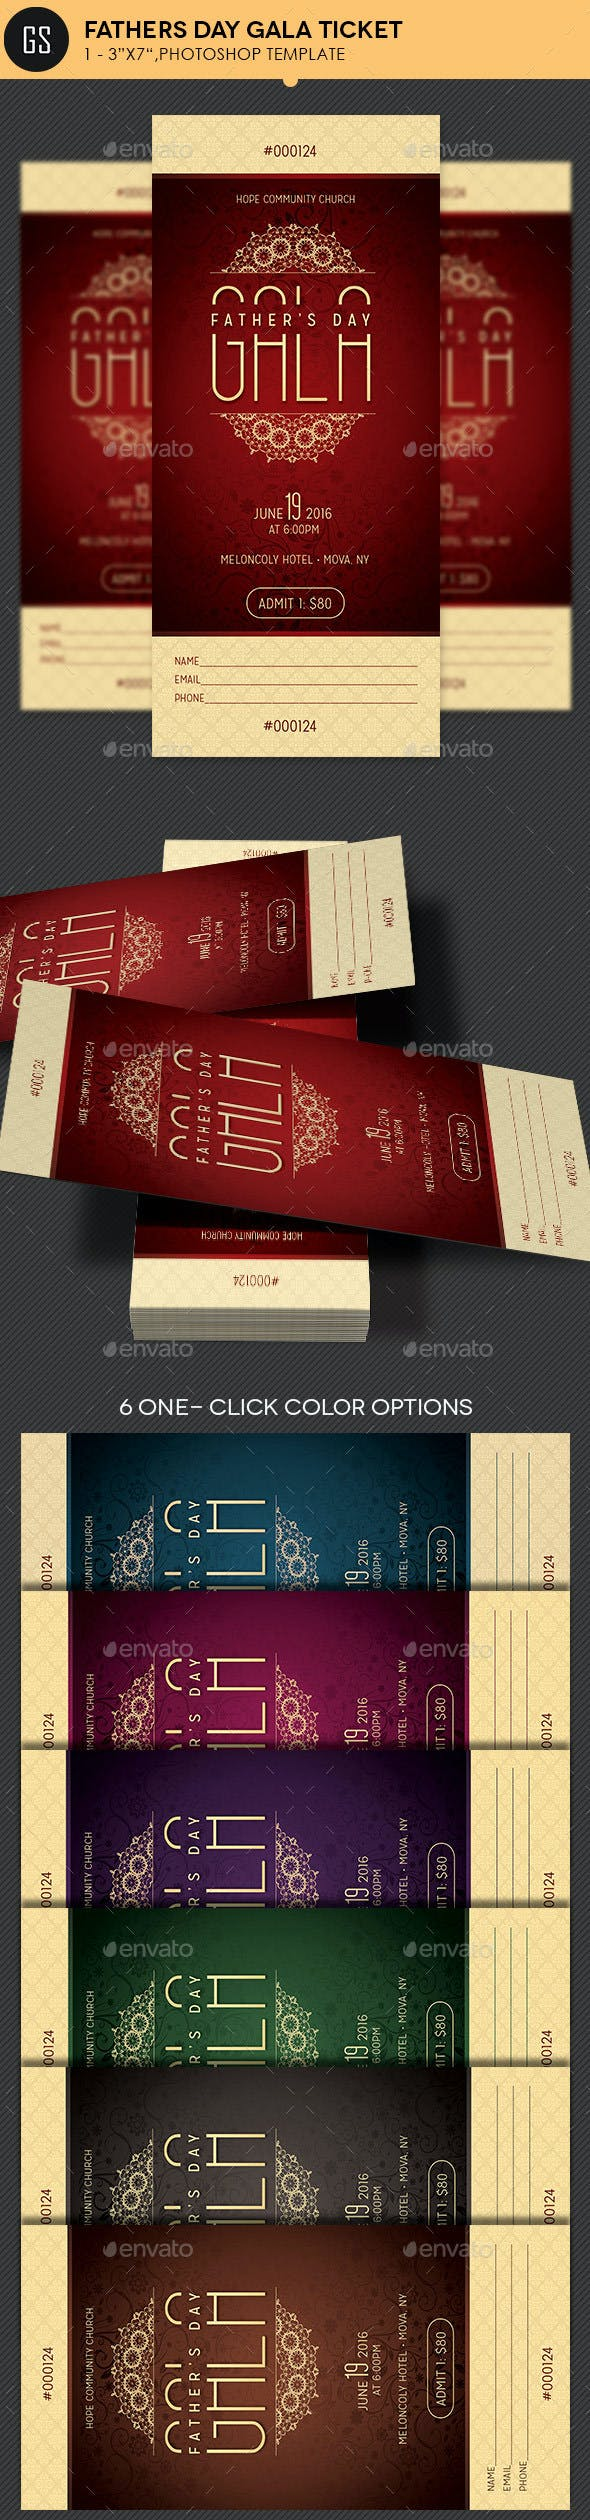 Fathers Day Gala Ticket Template